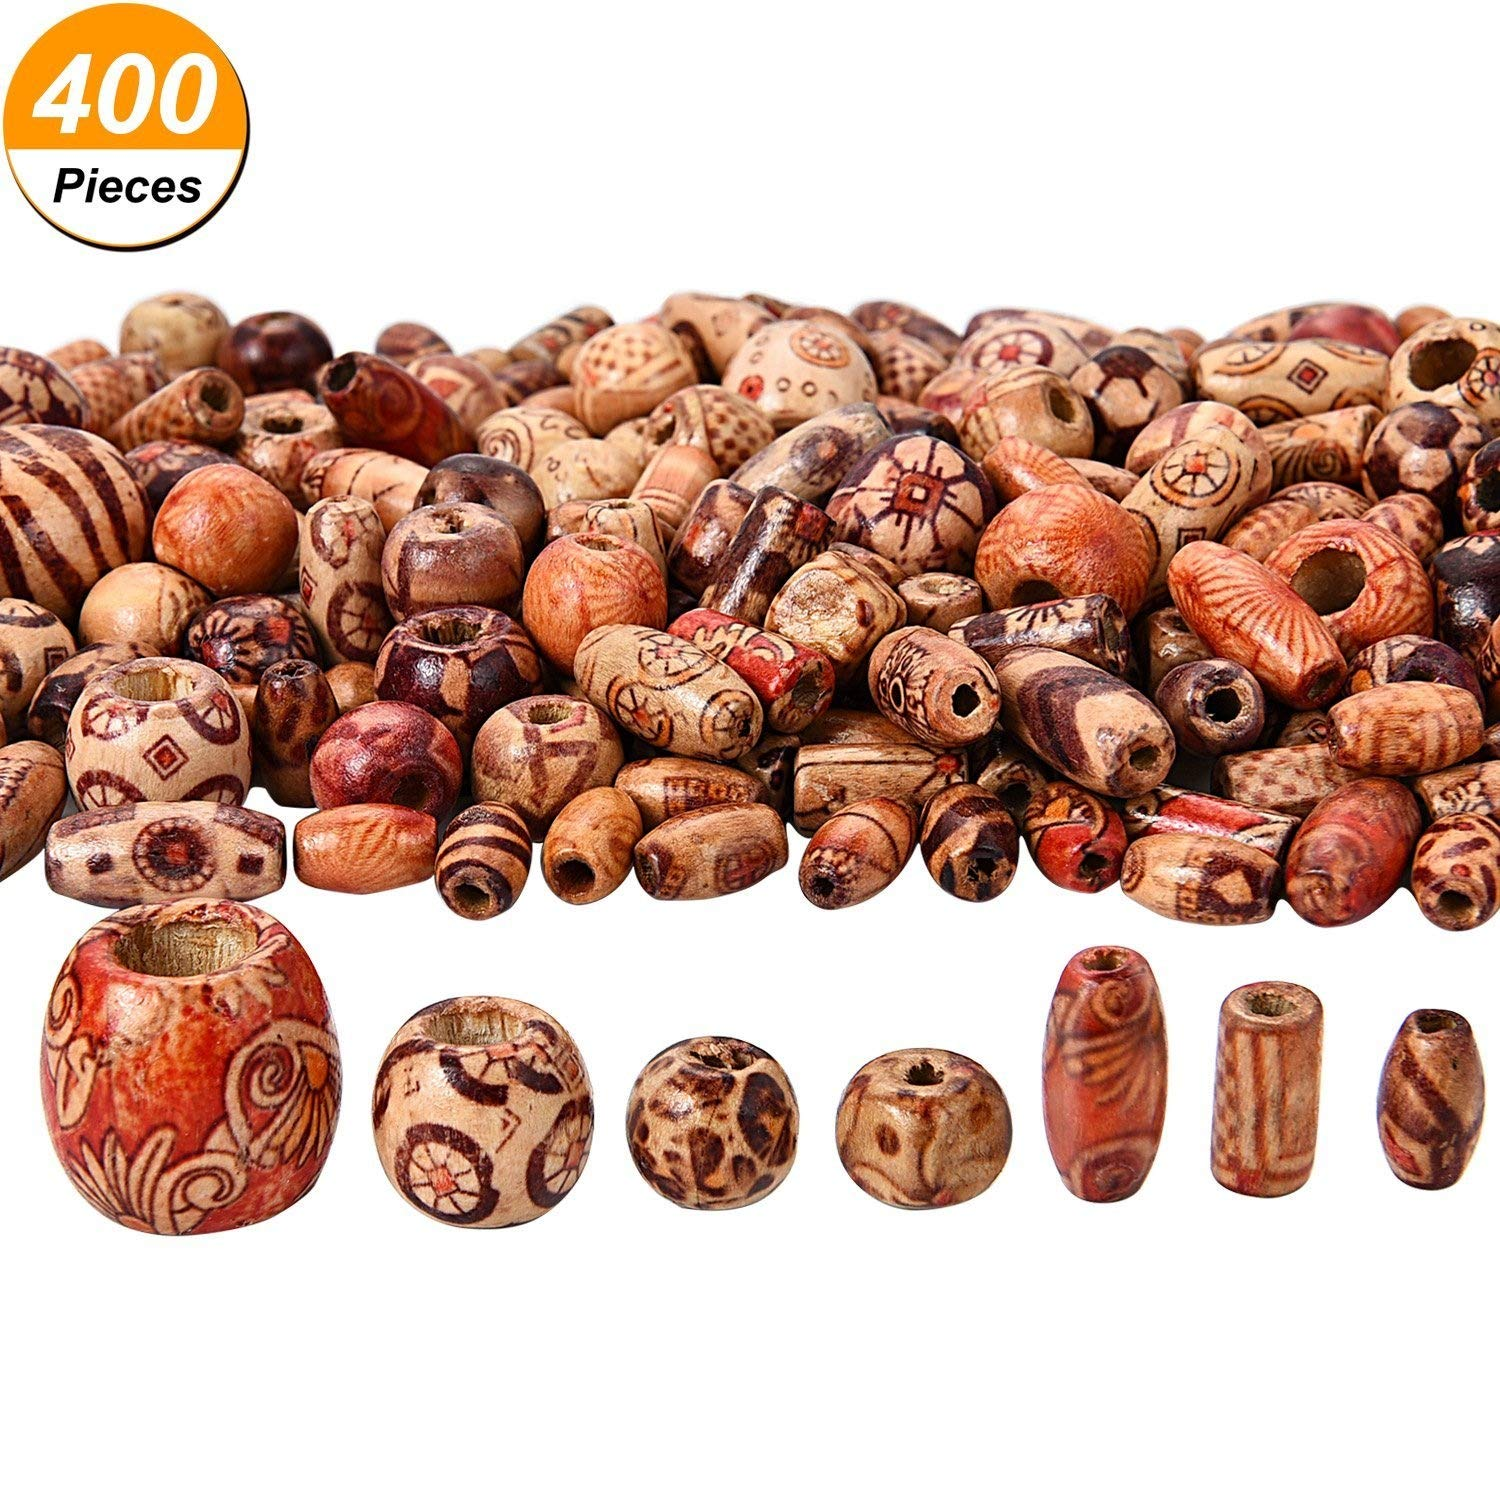 400 Pieces Printed Wooden Beads Various Shapes Loose Wood Beads for Jewelry Making DIY Bracelet Necklace Hair Crafts Bememo